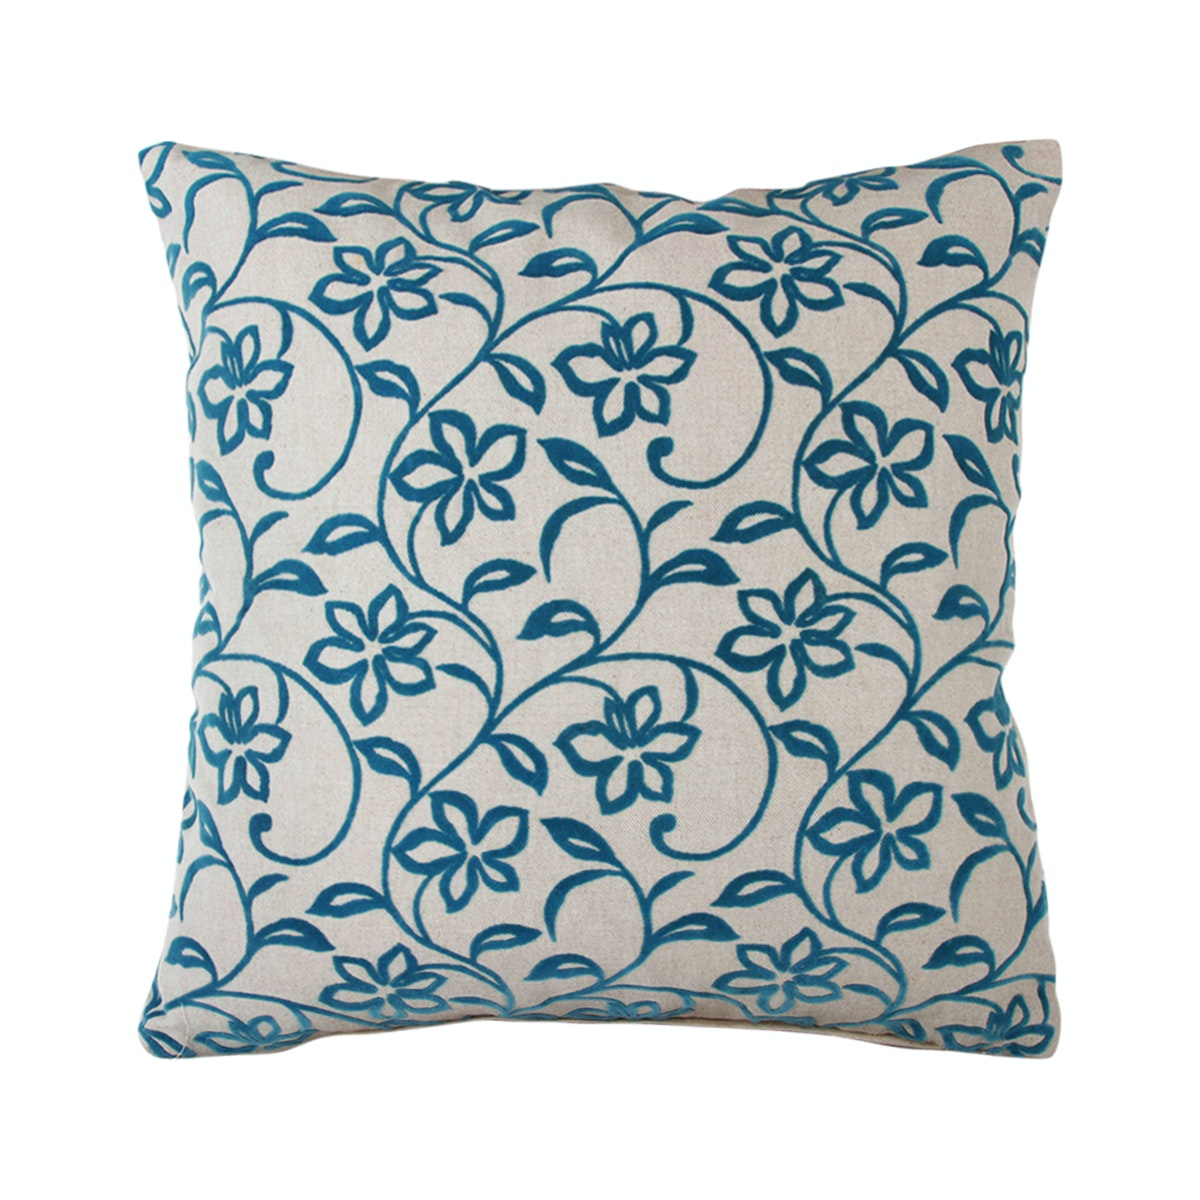 Le Atelier Florenza Teal Cushion Cover 45x45cm